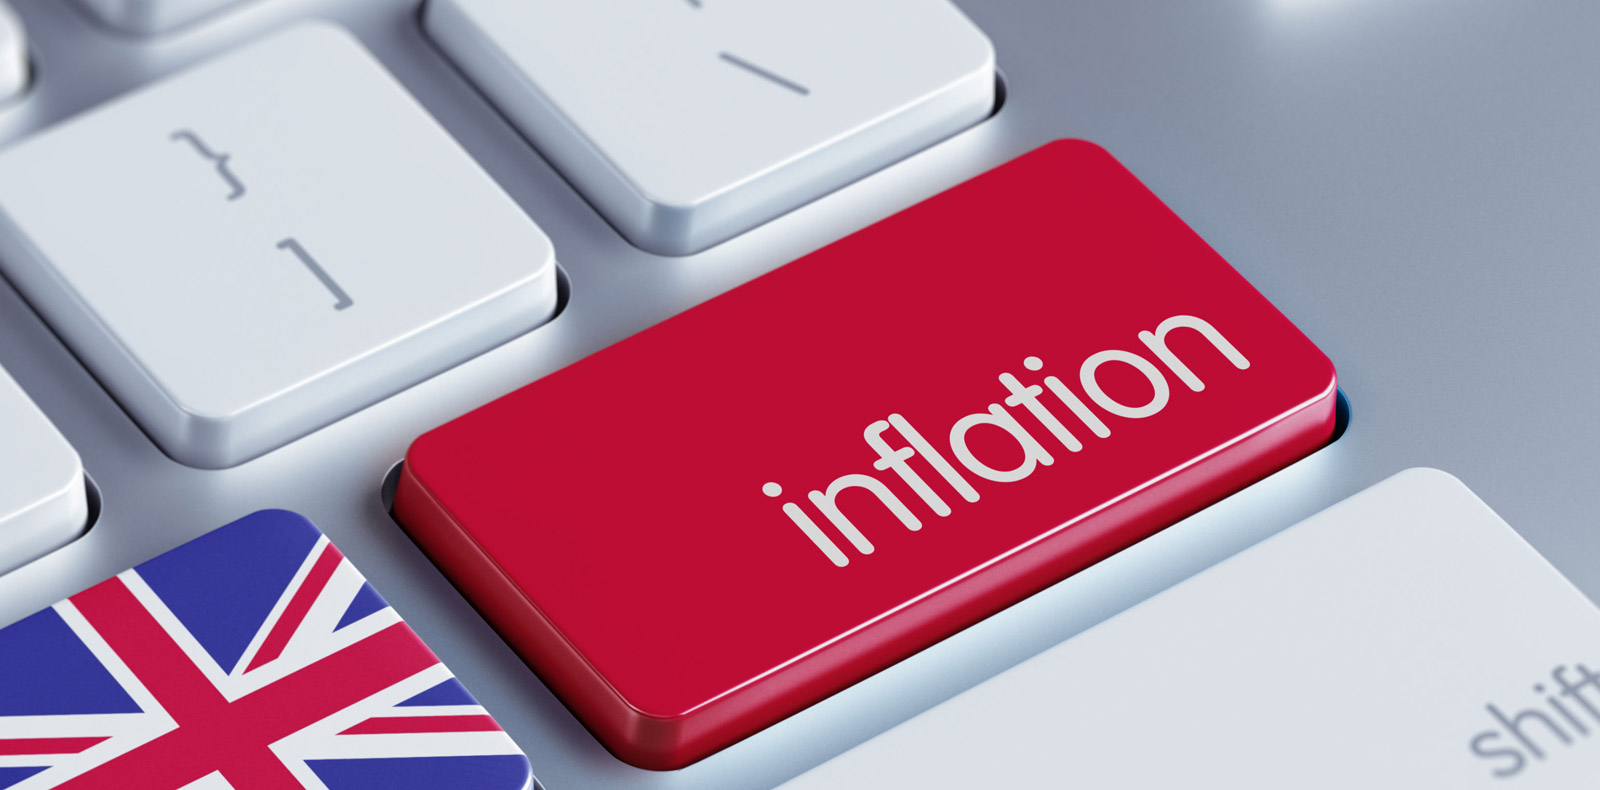 UK Inflation lowest in 12 months